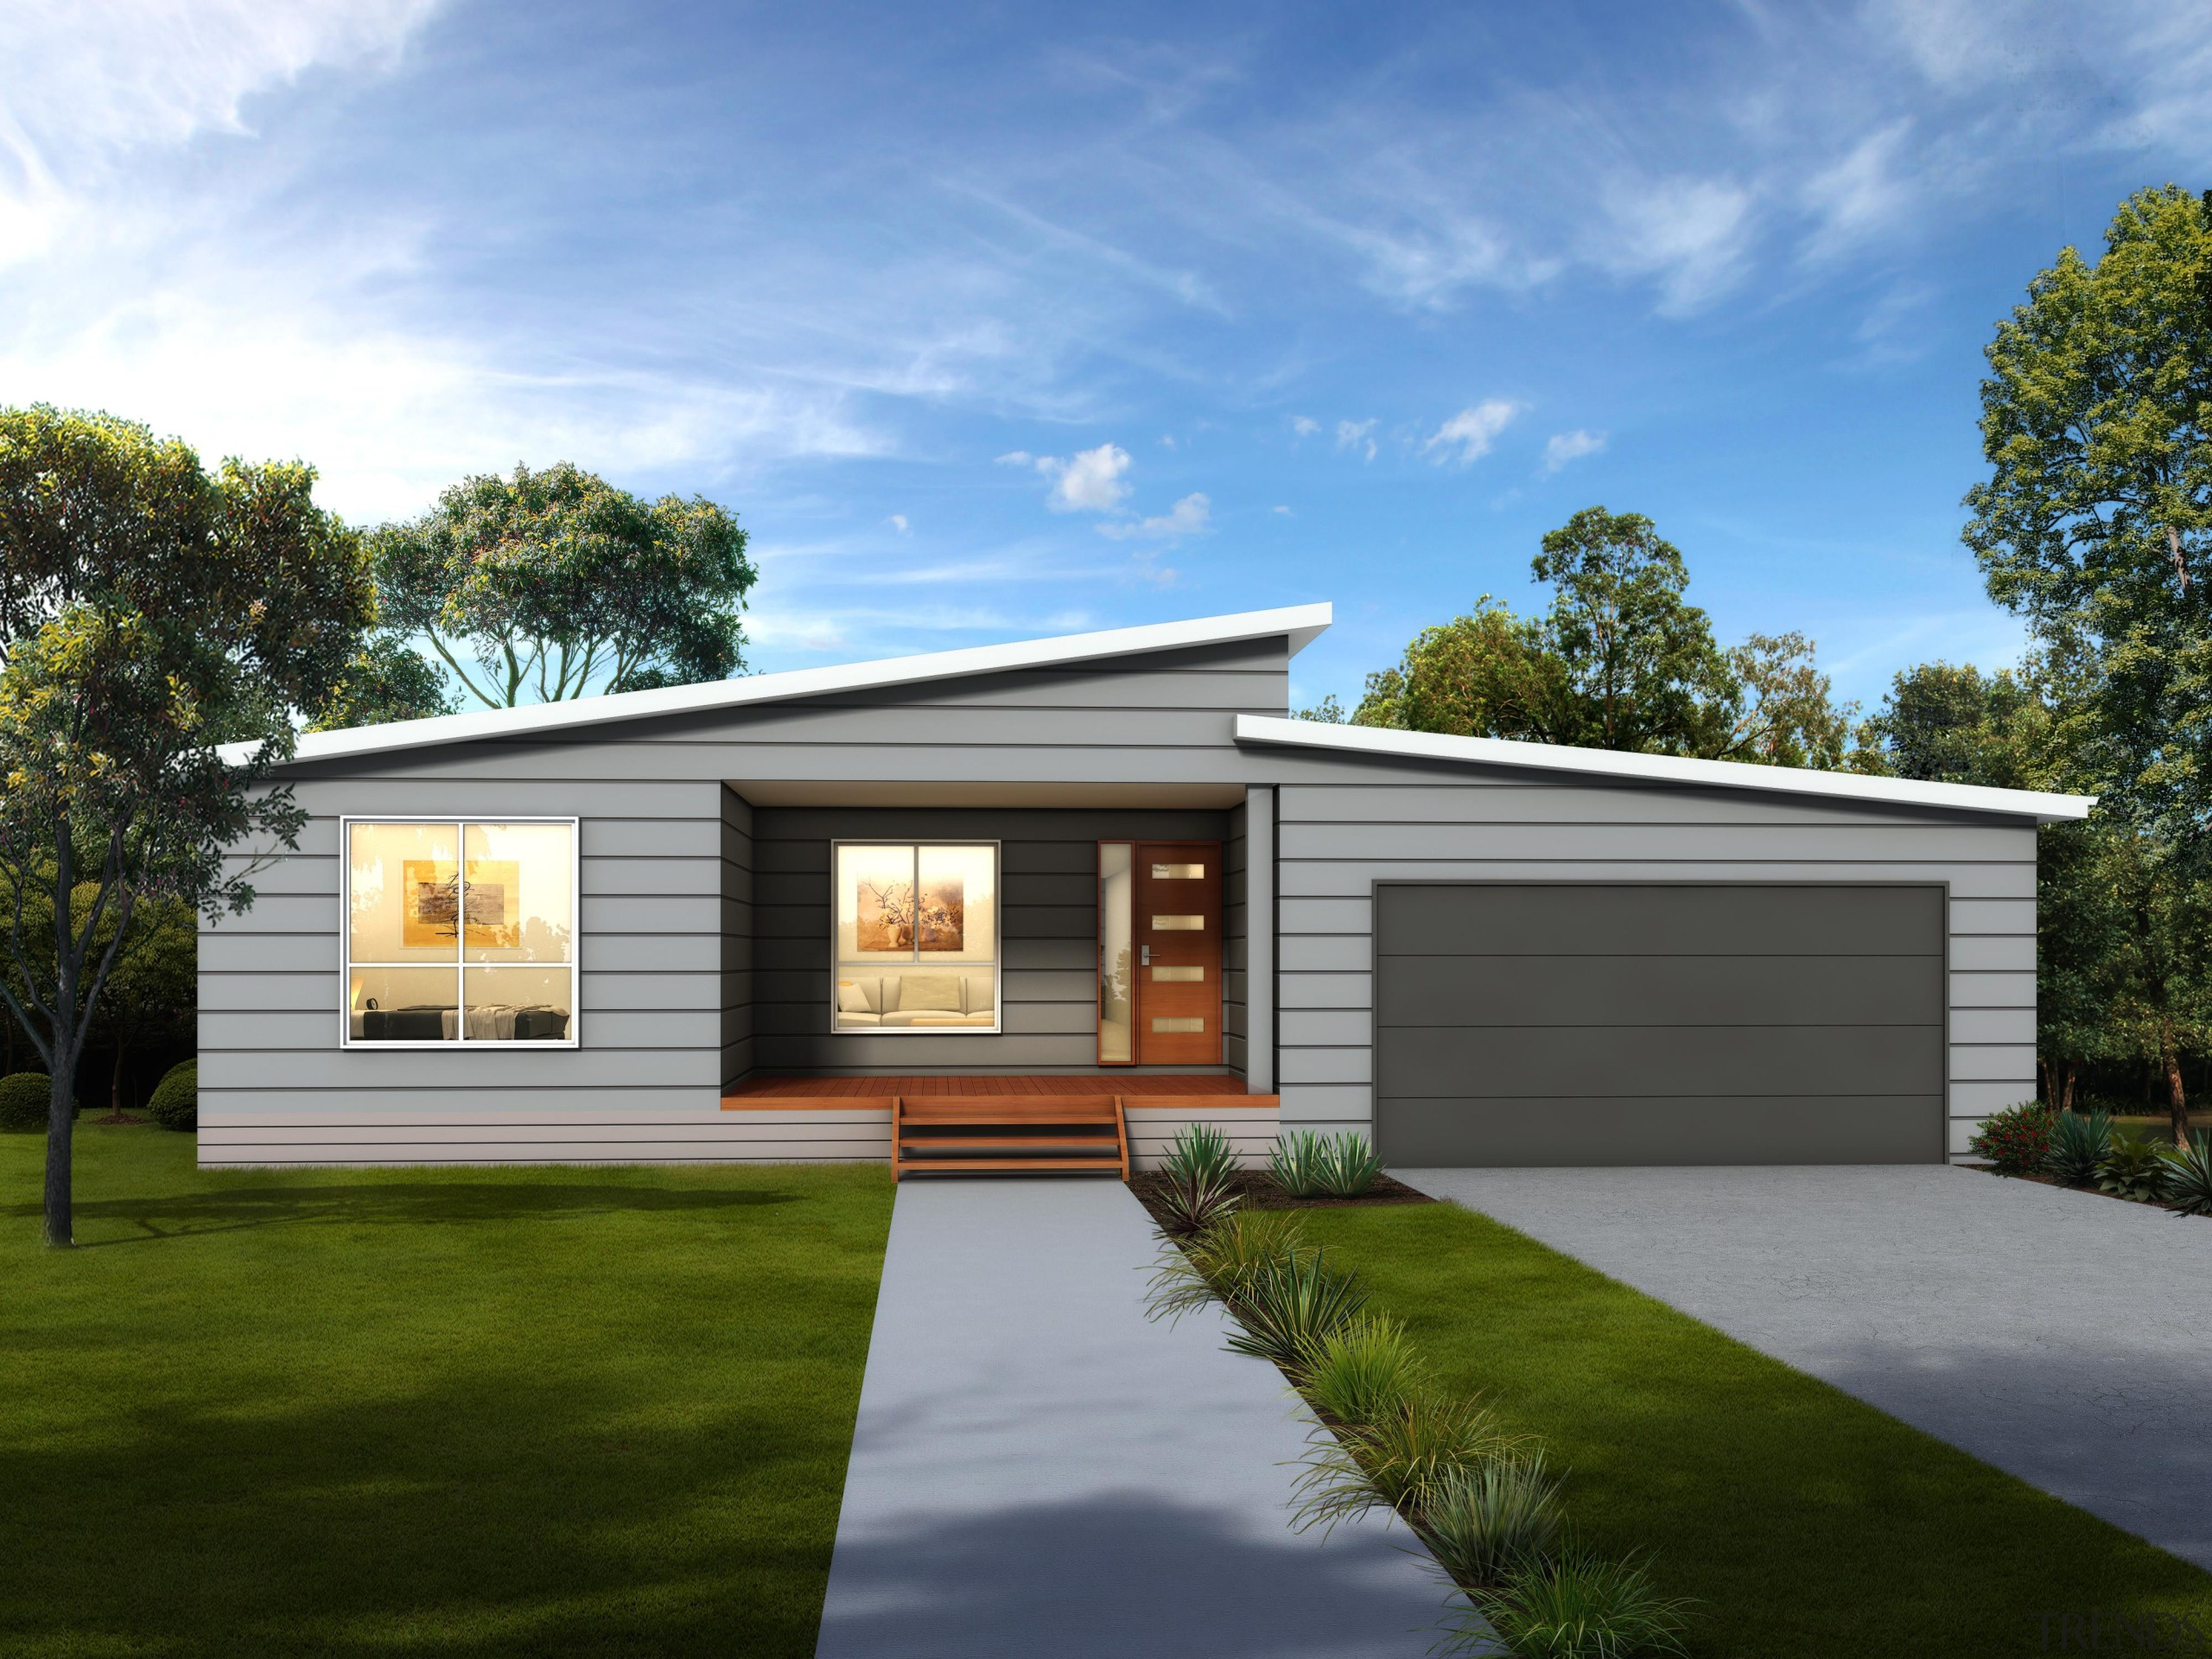 21.0 m x 12.5 mBedrooms: 4 + studyBathrooms: cottage, elevation, facade, home, house, luxury vehicle, property, real estate, residential area, shed, siding, teal